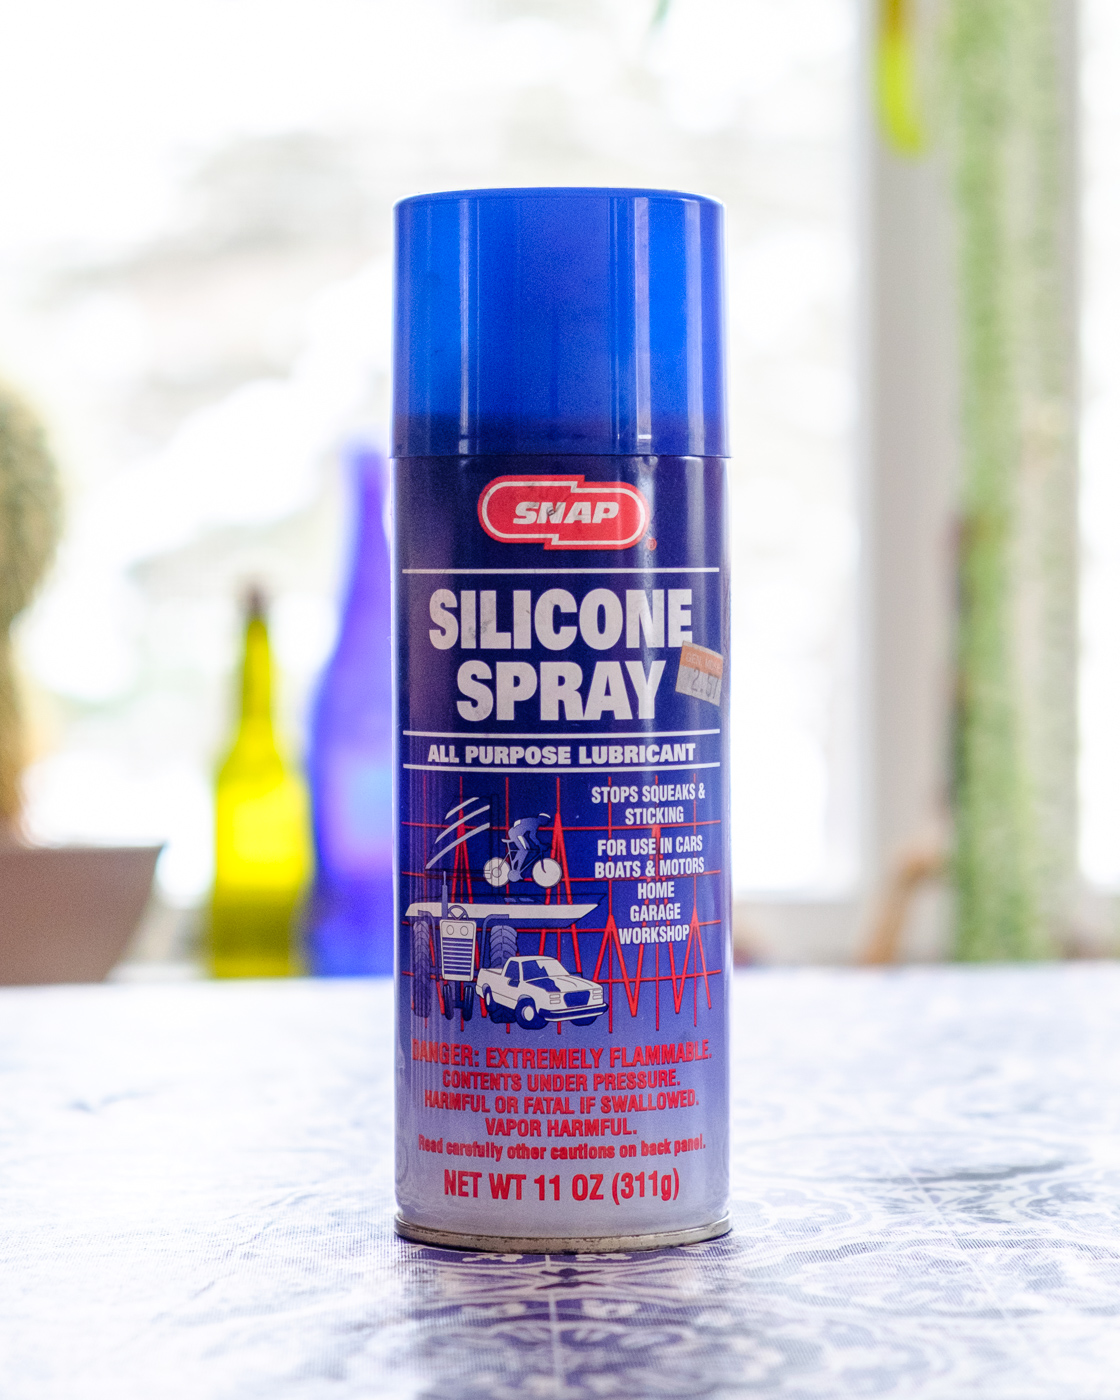 I must have bought this bottle of SNAP Silicone Spray 20 years ago. It's still working, but this brand has since been discontinued. You can find many similar alternatives at your local automotive supply store...